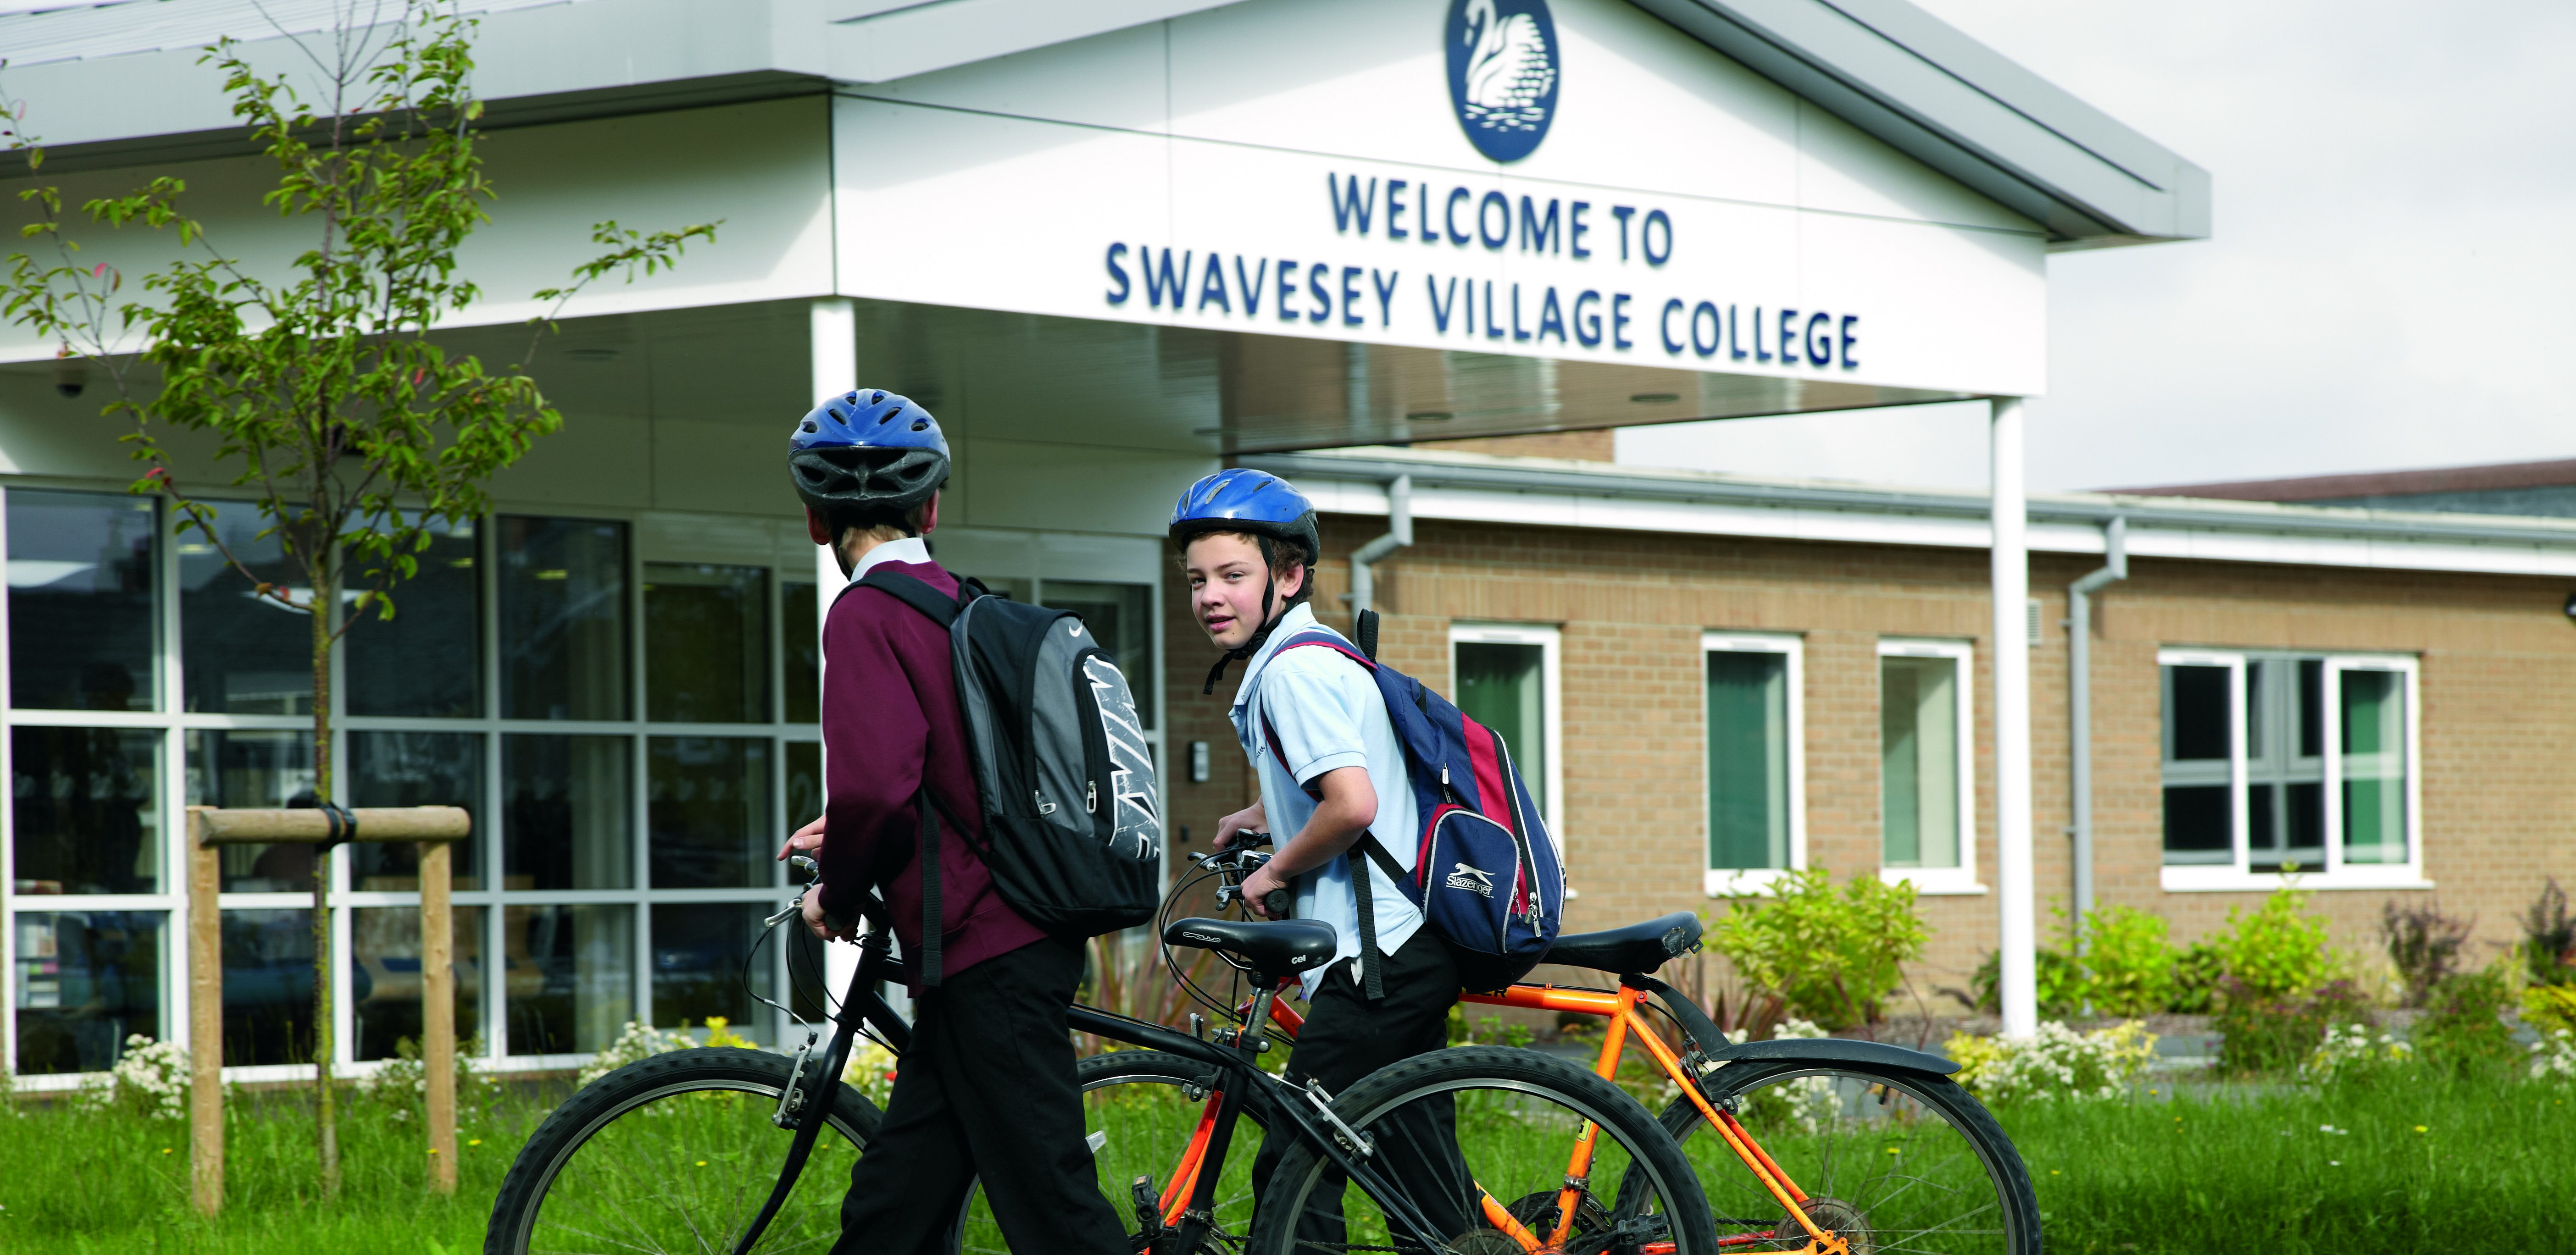 Swavesey Village College